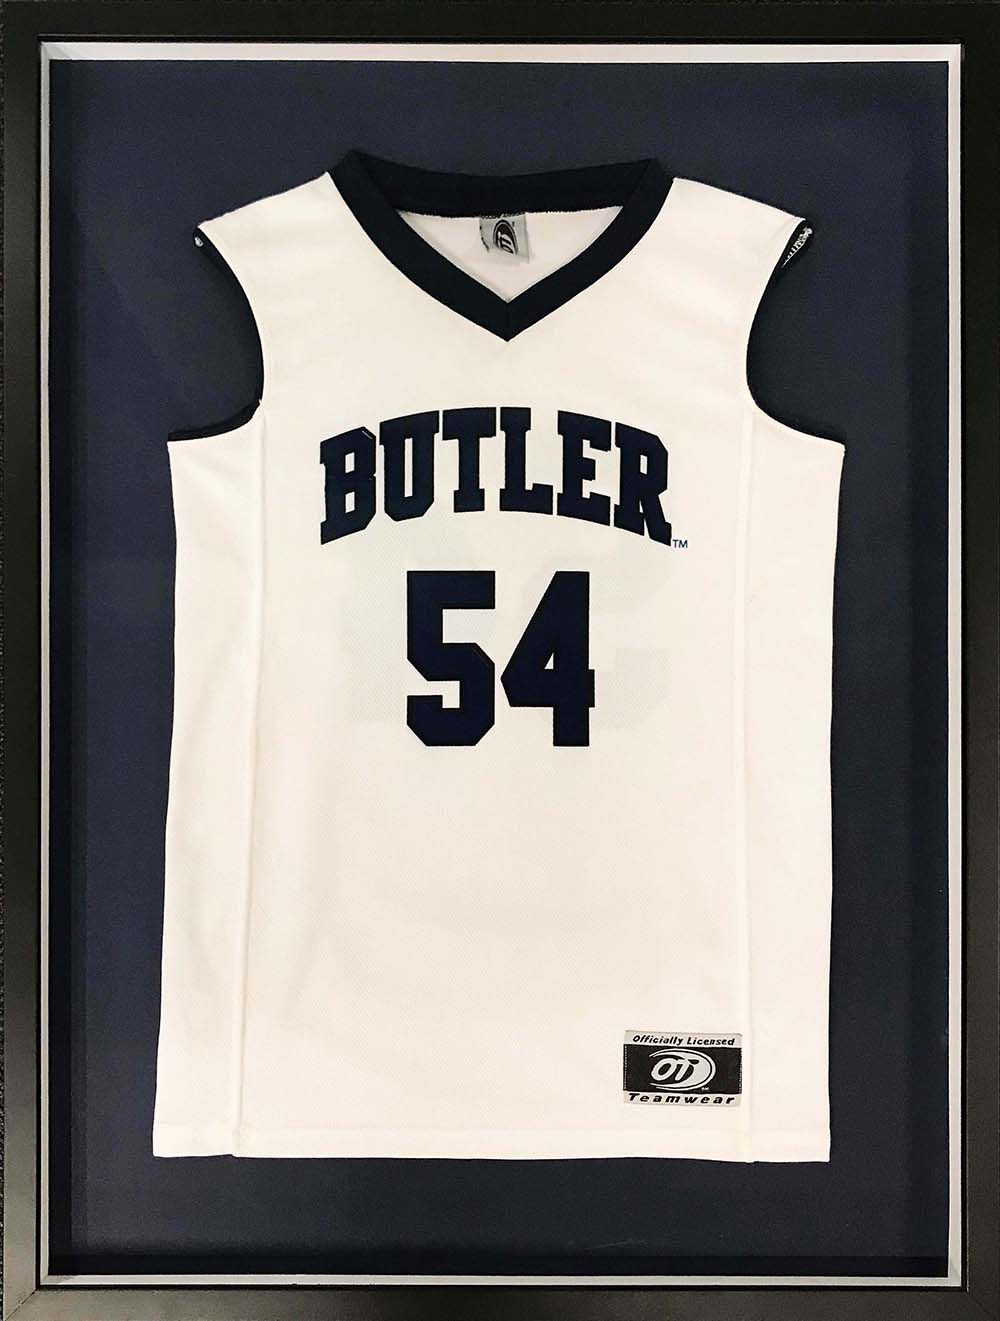 Butler Bulldogs basketball jersey in custom frame